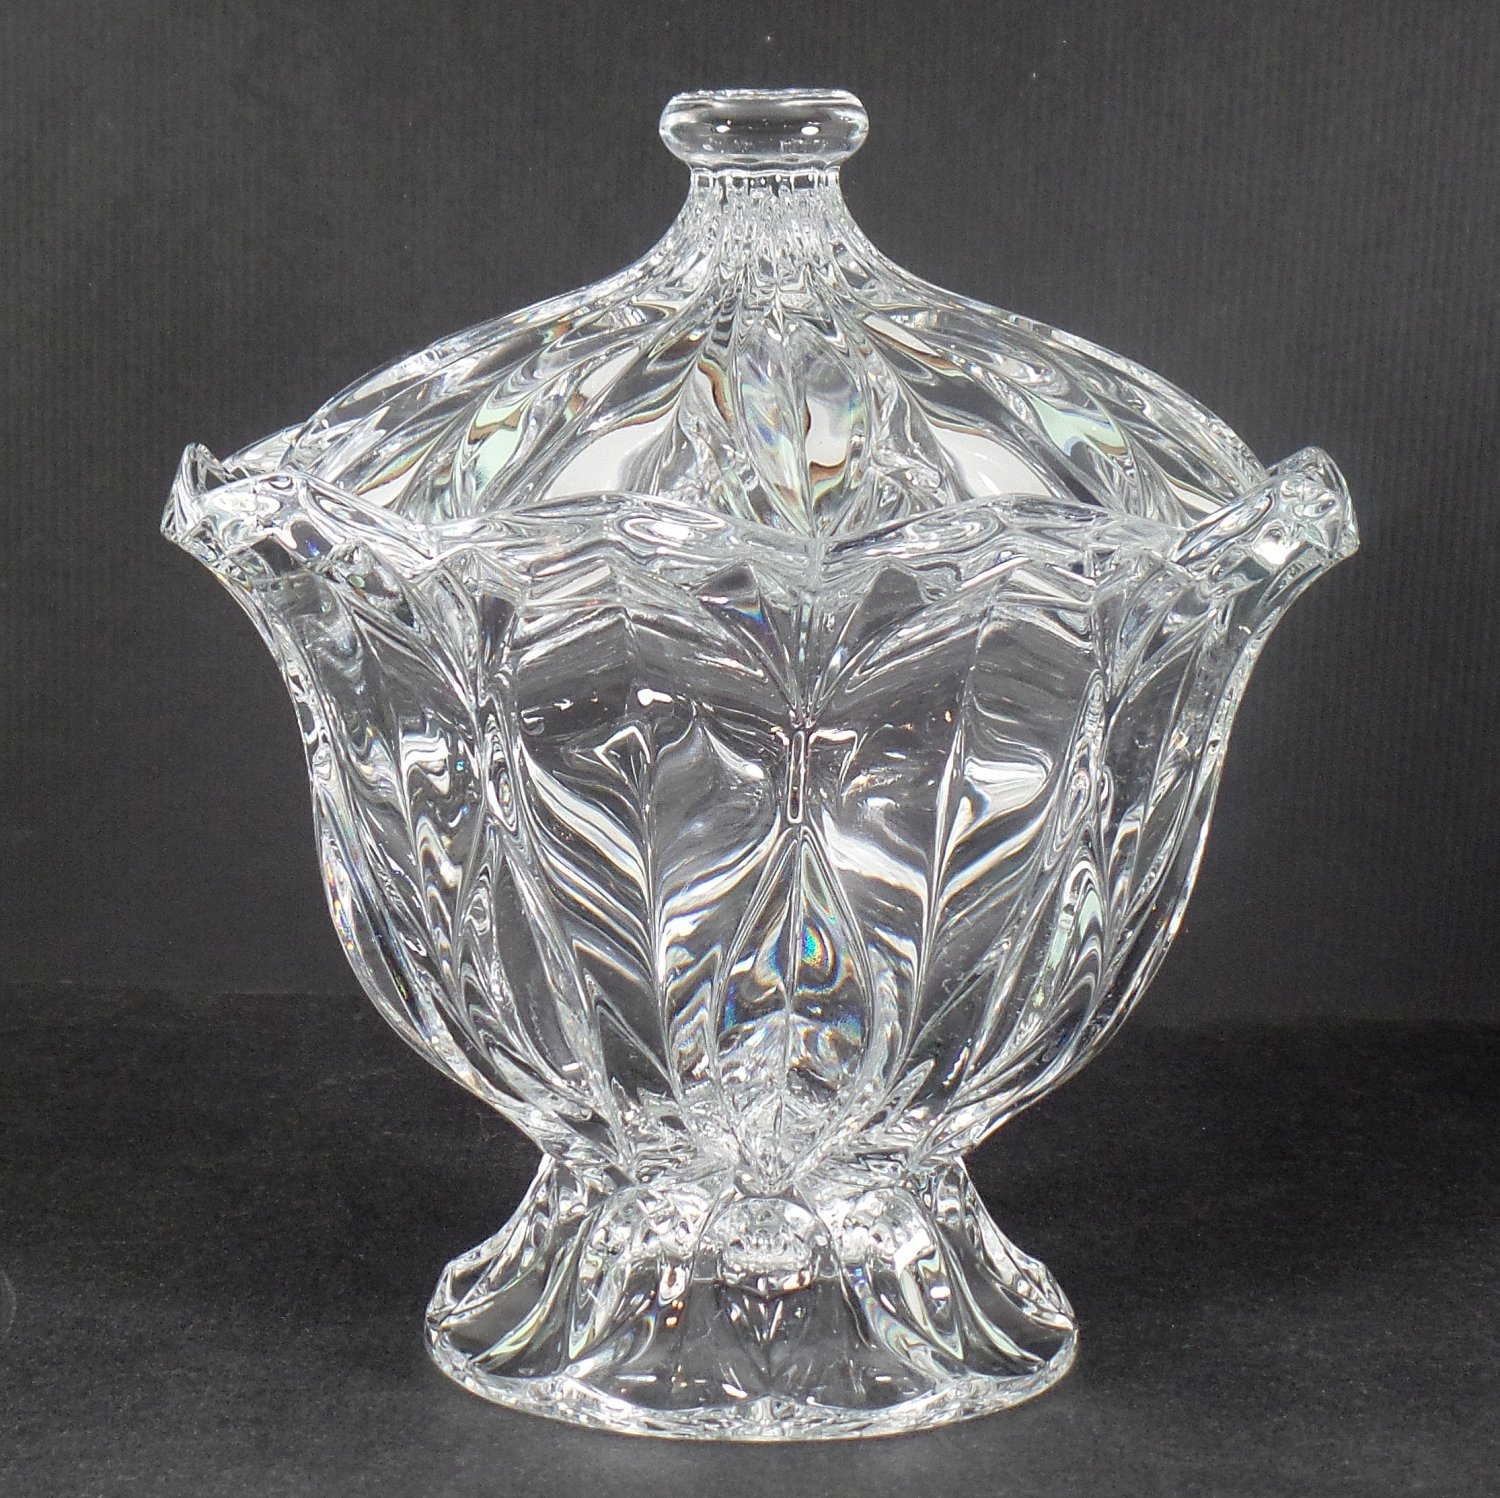 Mikasa Blossom Candy Dish with Lid - Giftware